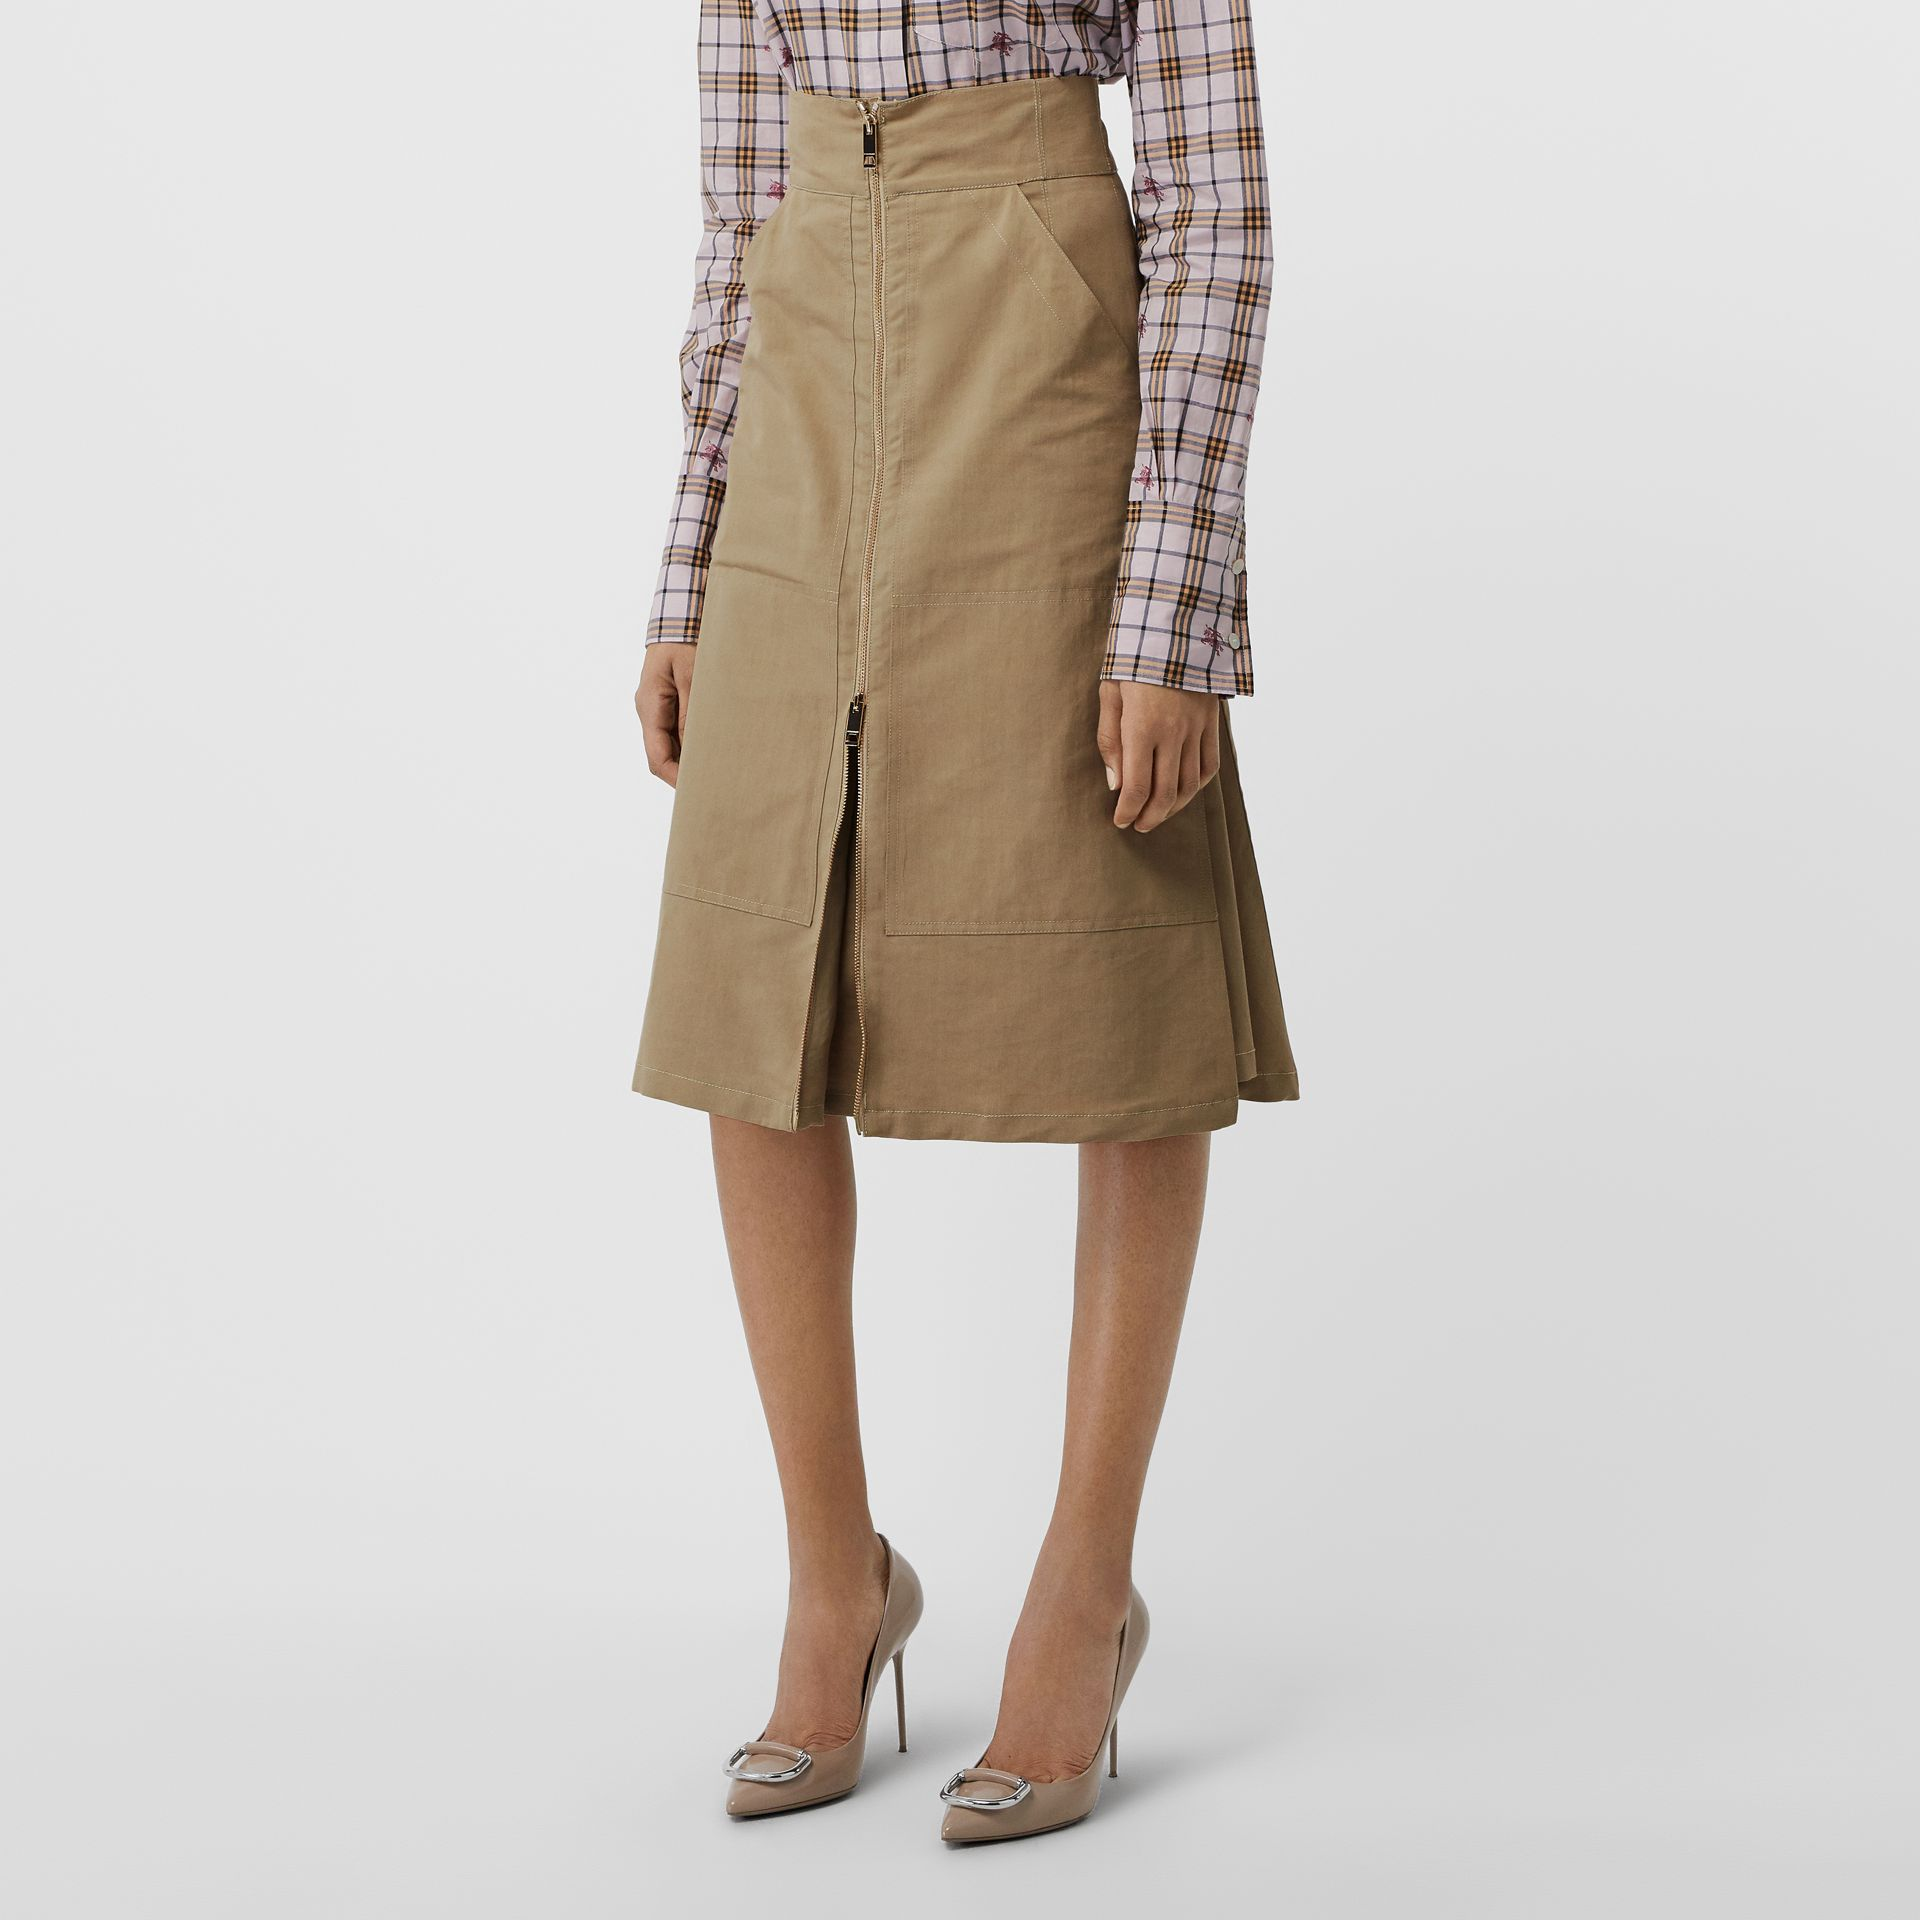 Cotton Silk High-waisted Skirt in Beige - Women | Burberry - gallery image 4